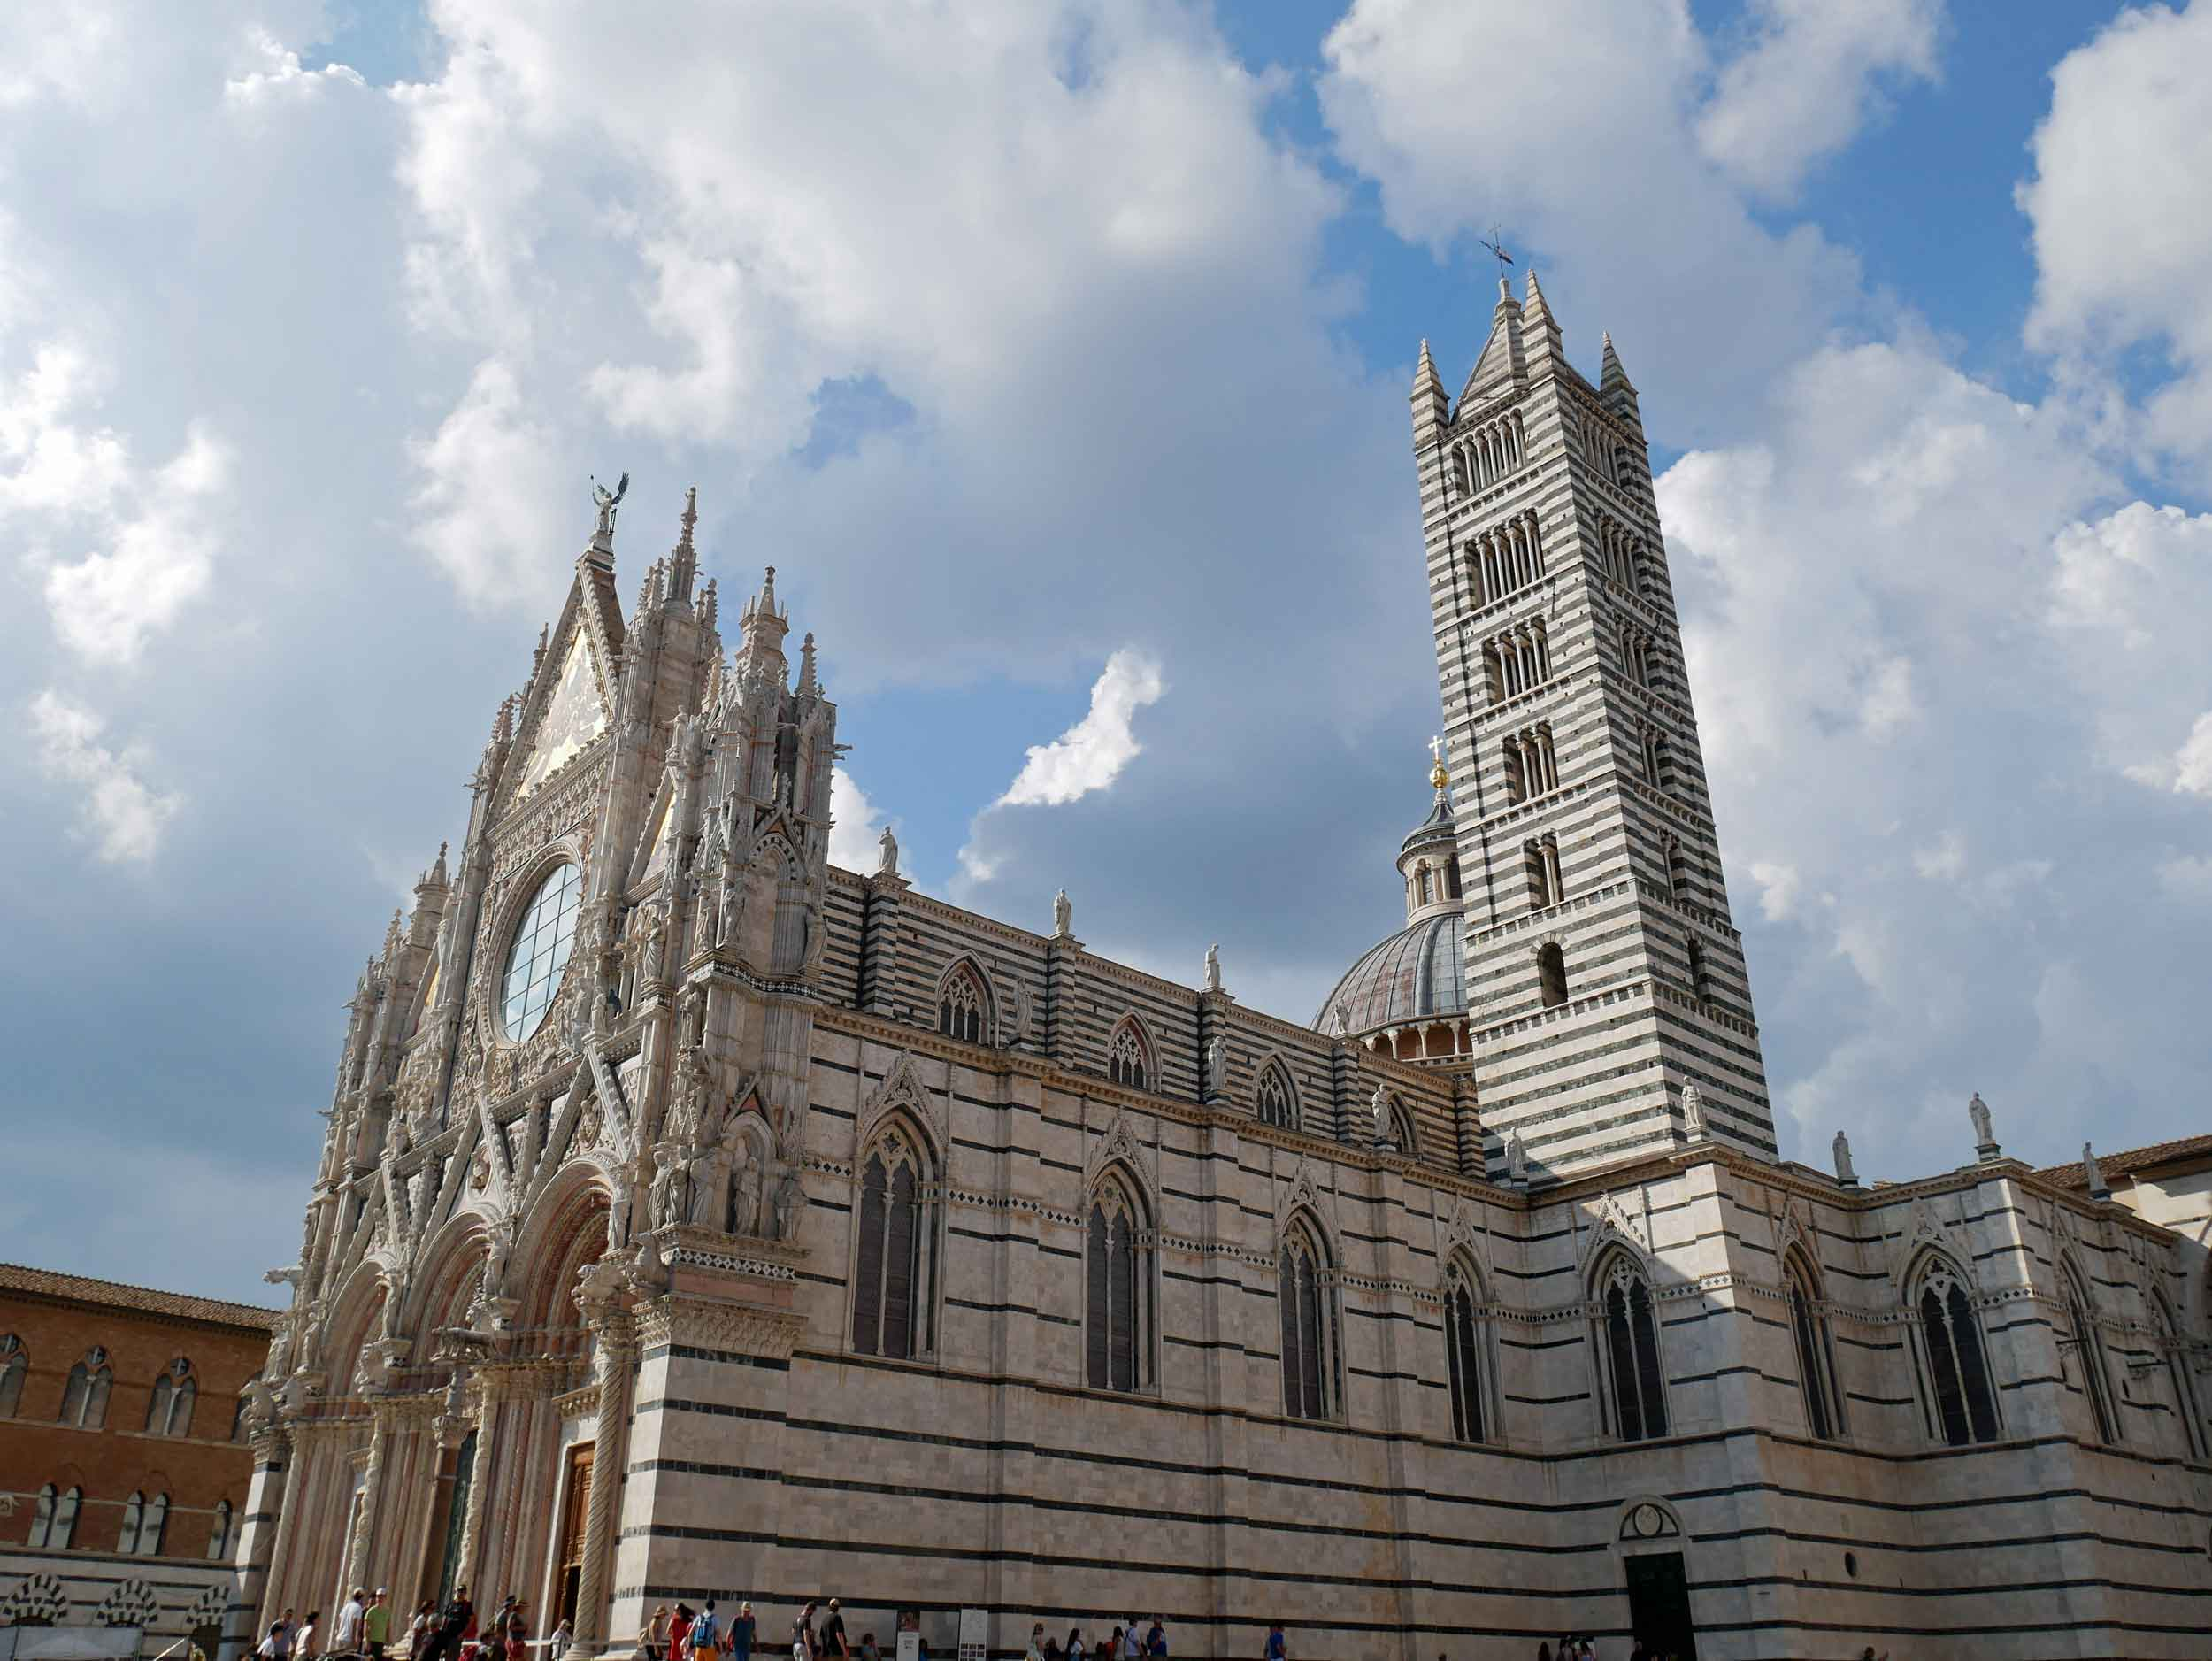 The town's green and white stripped marble Duomo is from the 1200s.